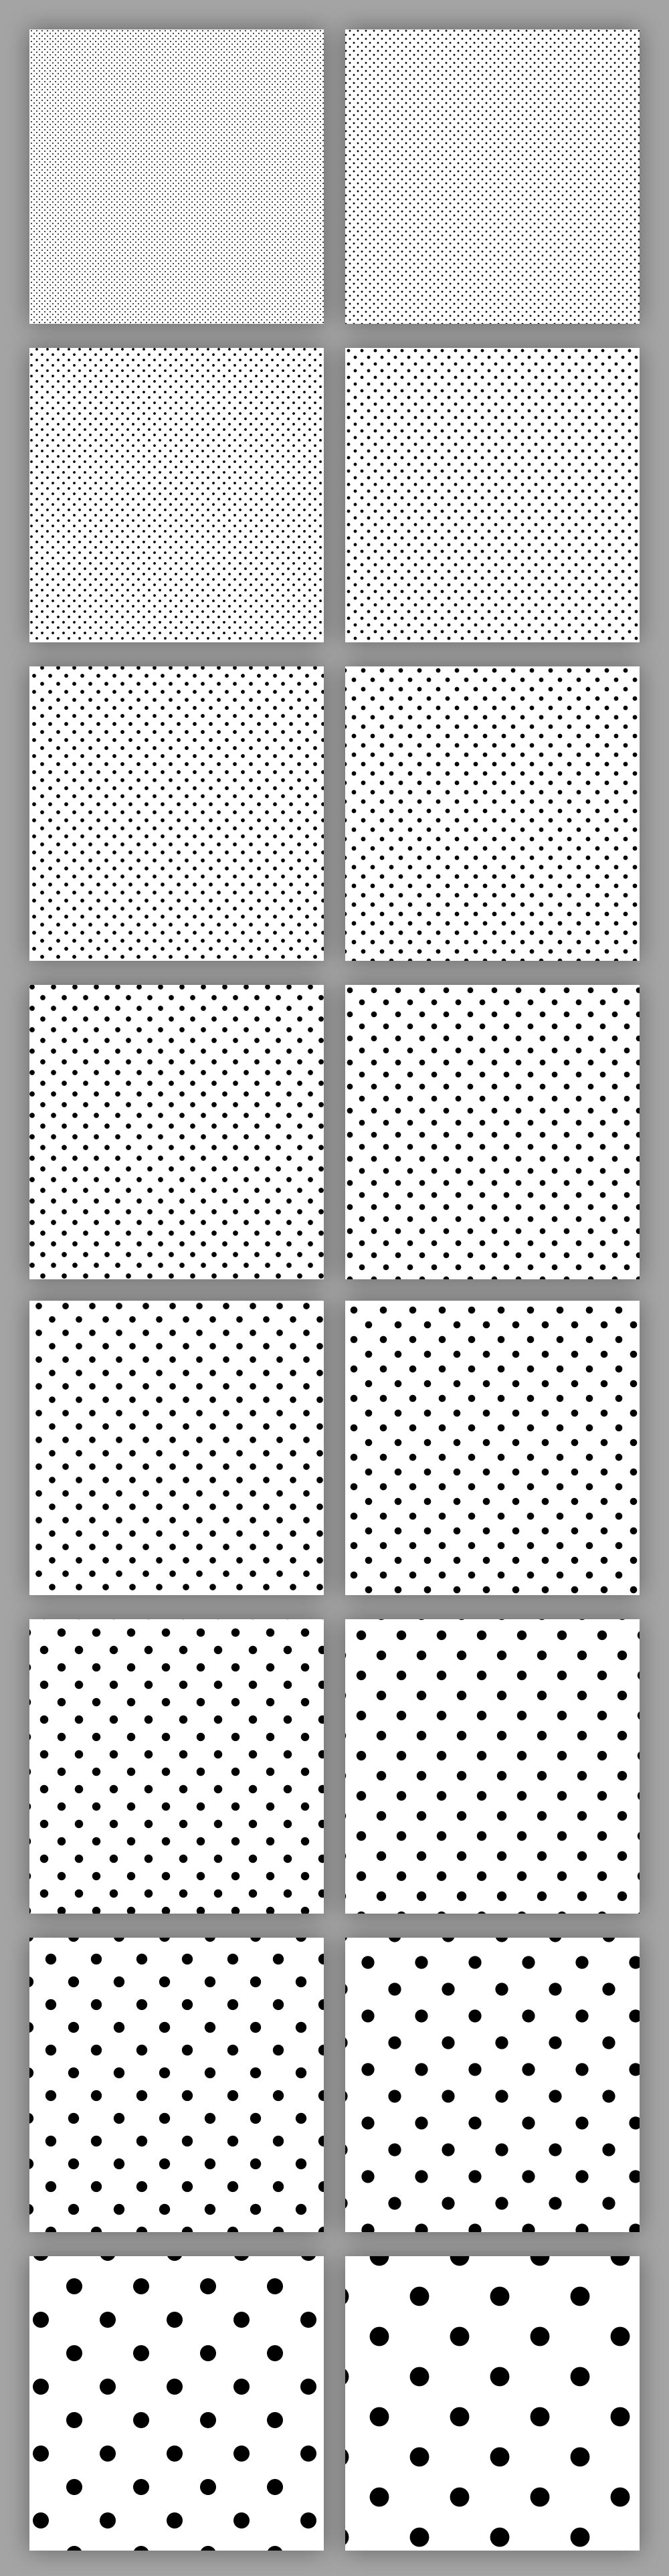 http://www.graphicsfuel.com/wp-content/uploads/2015/06/halftone-patterns.jpg